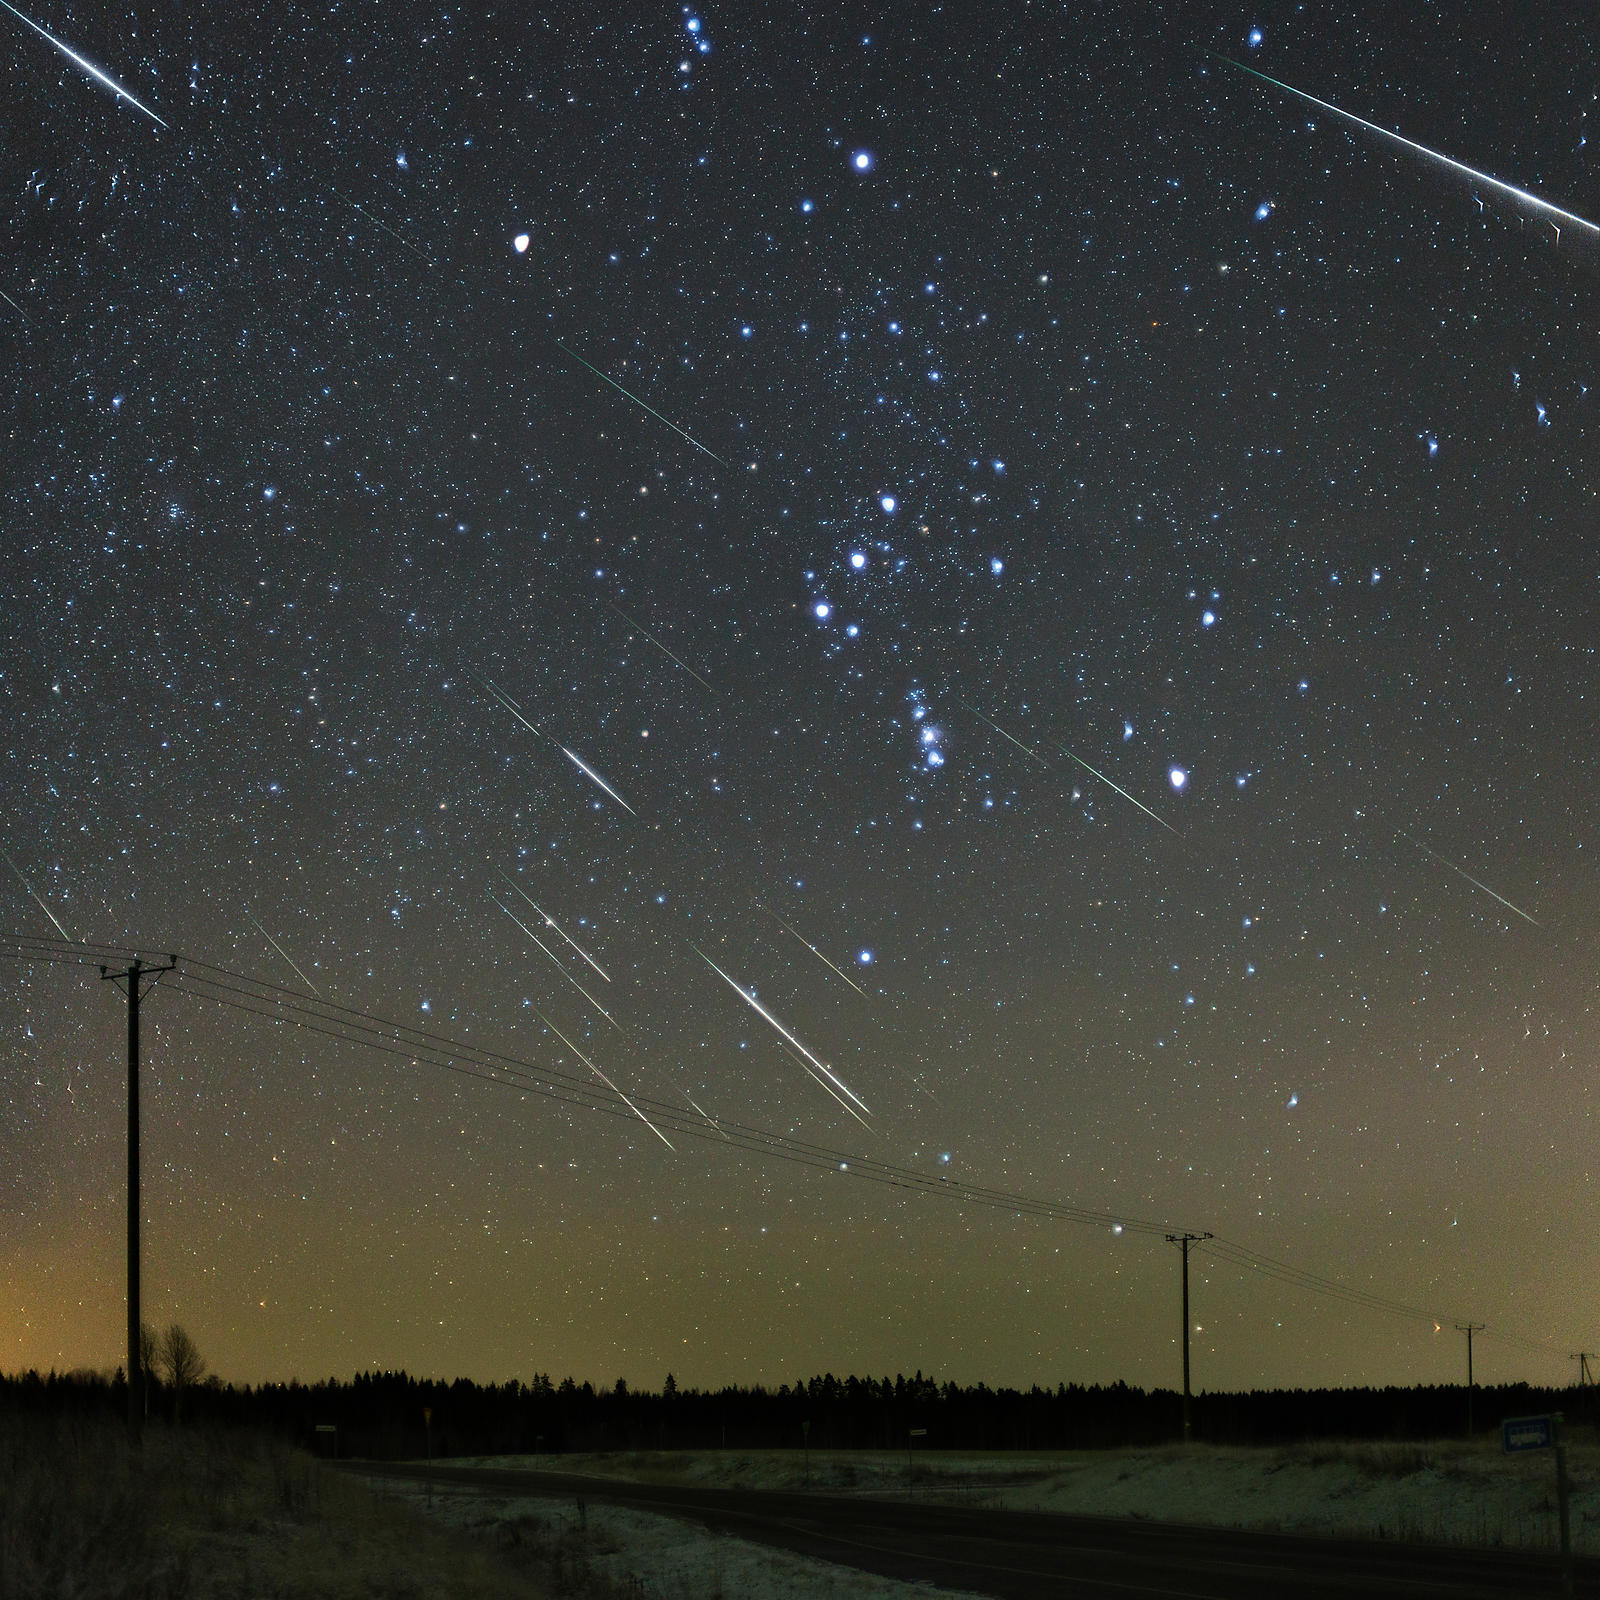 Half an hour of Geminids. 24 Geminid meteors are captured in this composite taken on December 14 2015 in rural Southern Finla...